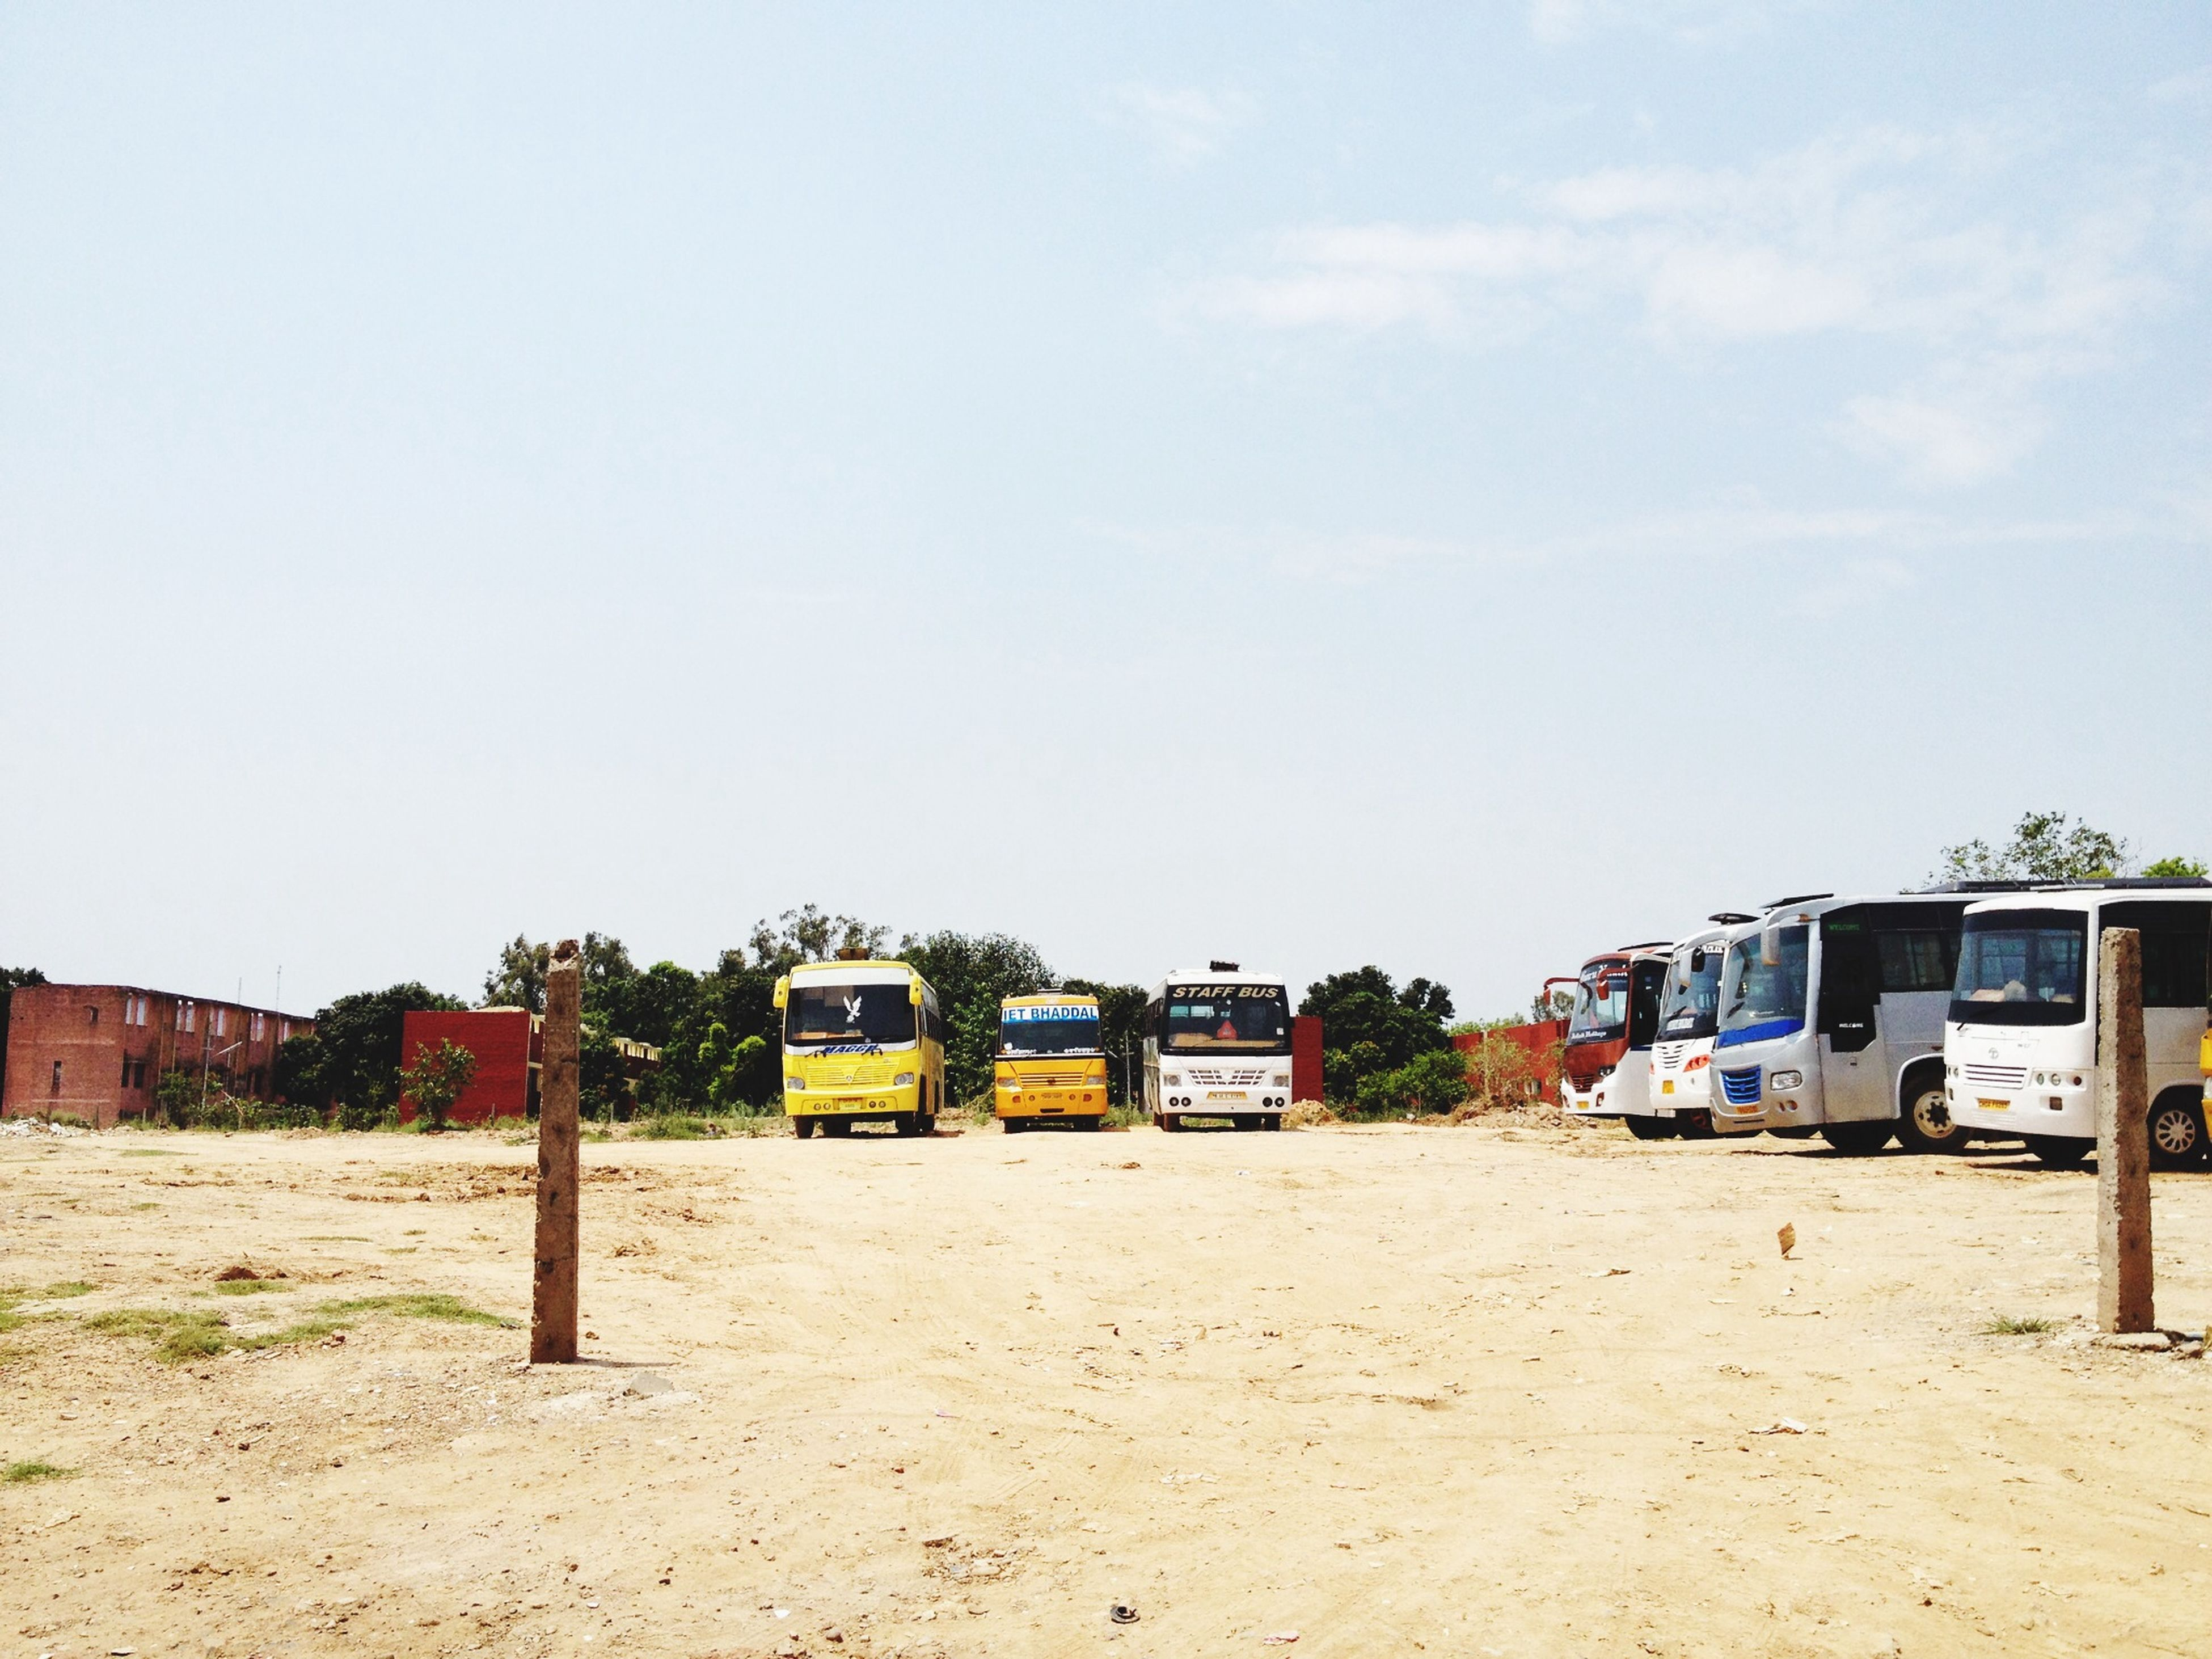 sand, transportation, sky, beach, mode of transport, clear sky, built structure, land vehicle, car, day, building exterior, architecture, outdoors, copy space, absence, no people, empty, tree, sunlight, abandoned